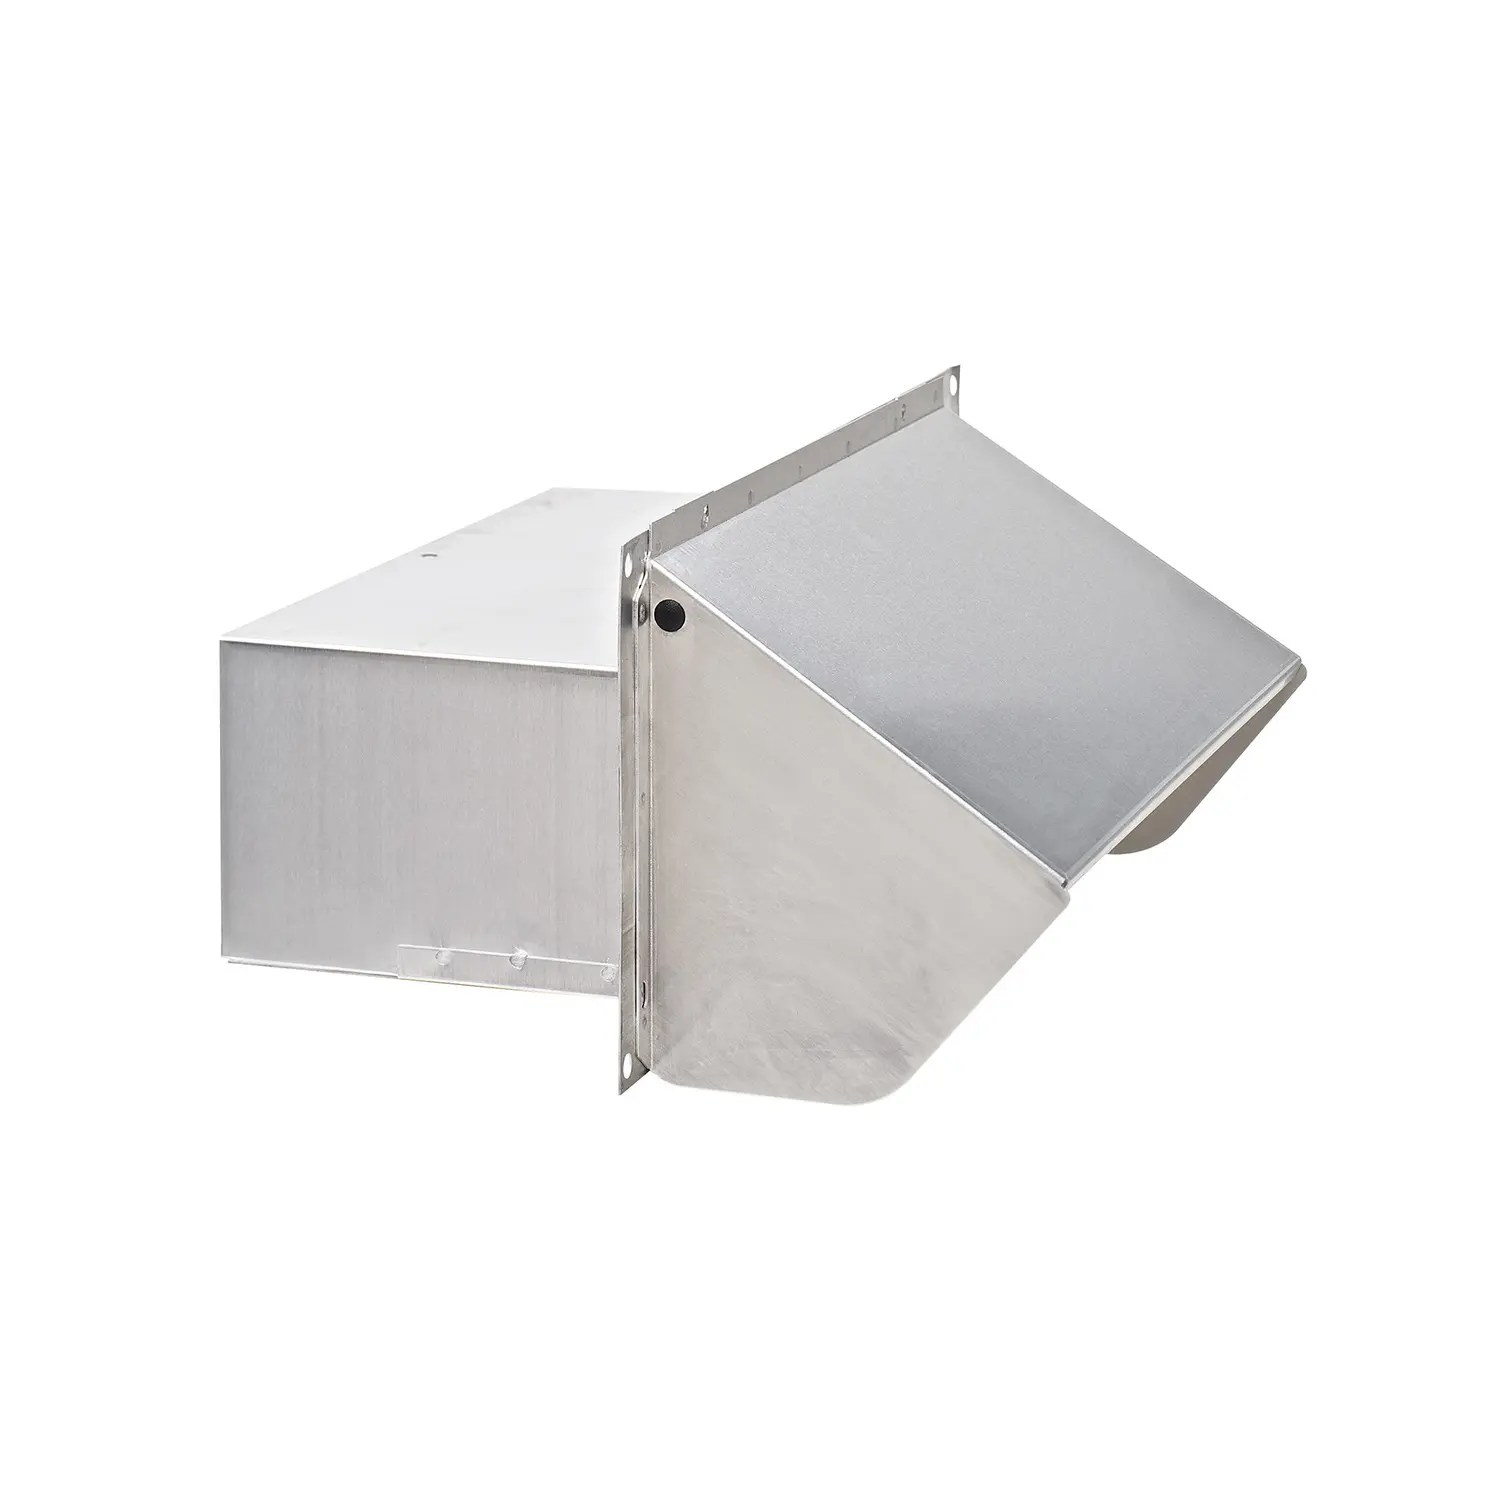 -NuTone® Wall Cap for 3-1/4-Inch x 10-Inch Duct for Range Hoods and Bath Ventilation Fans